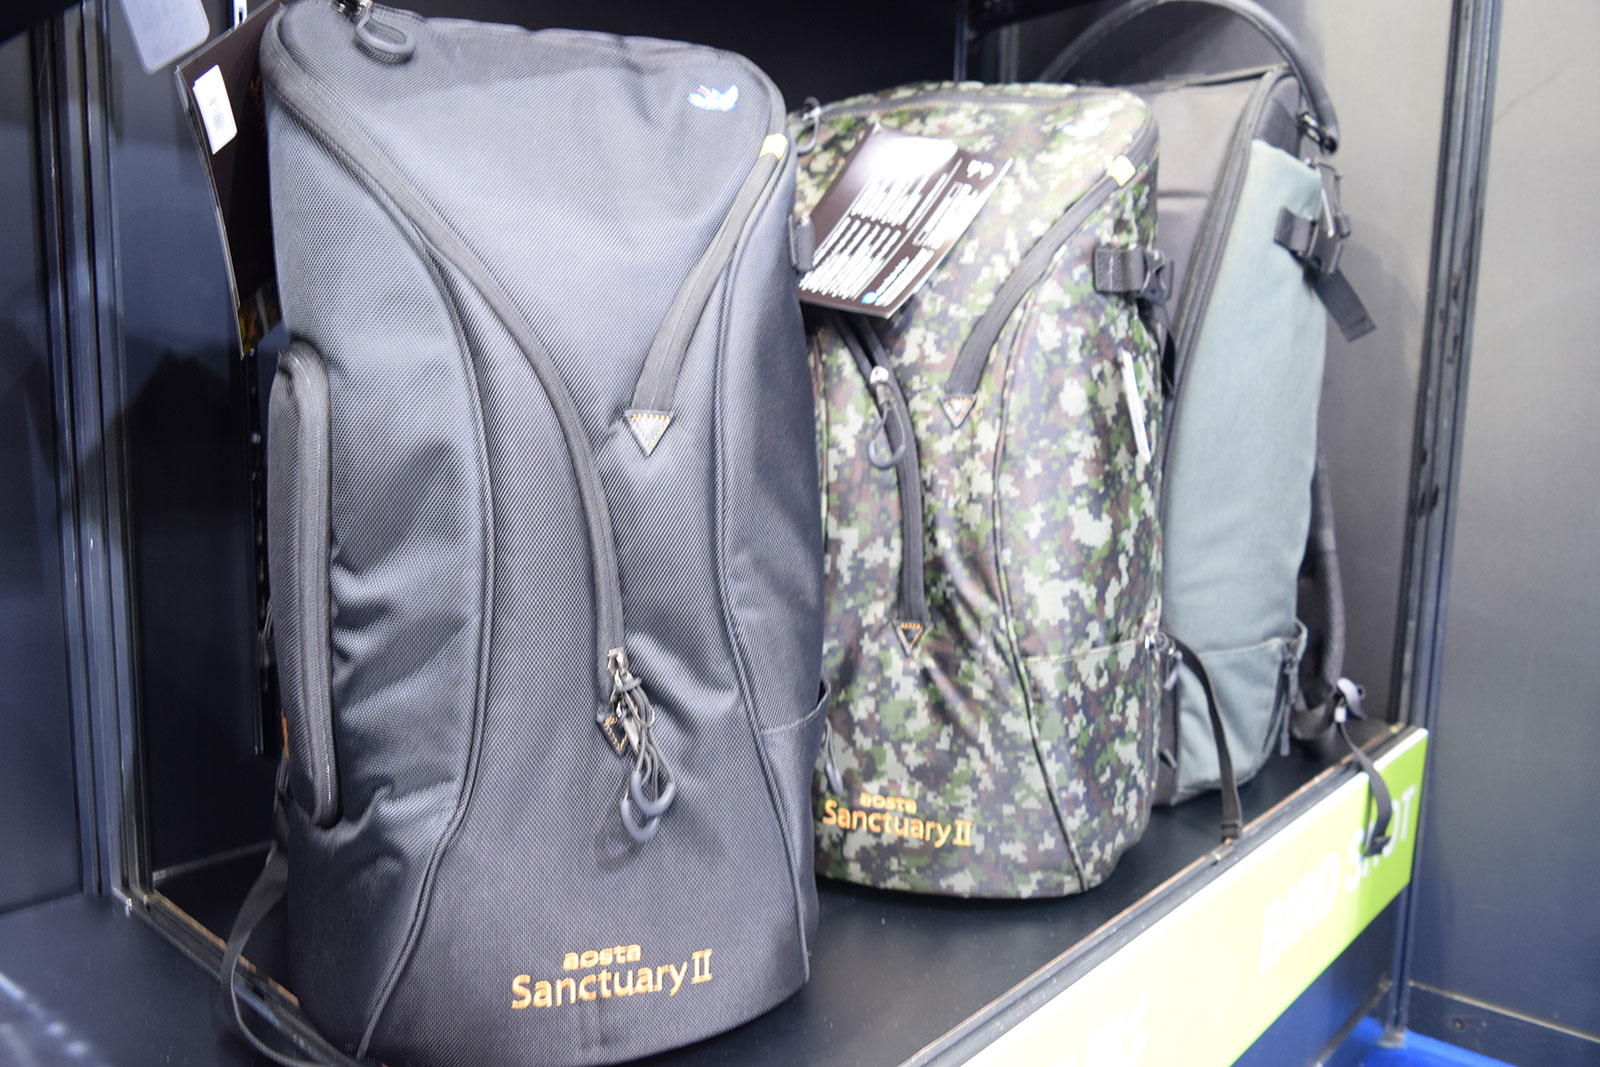 Backpacks | Sanctuary models